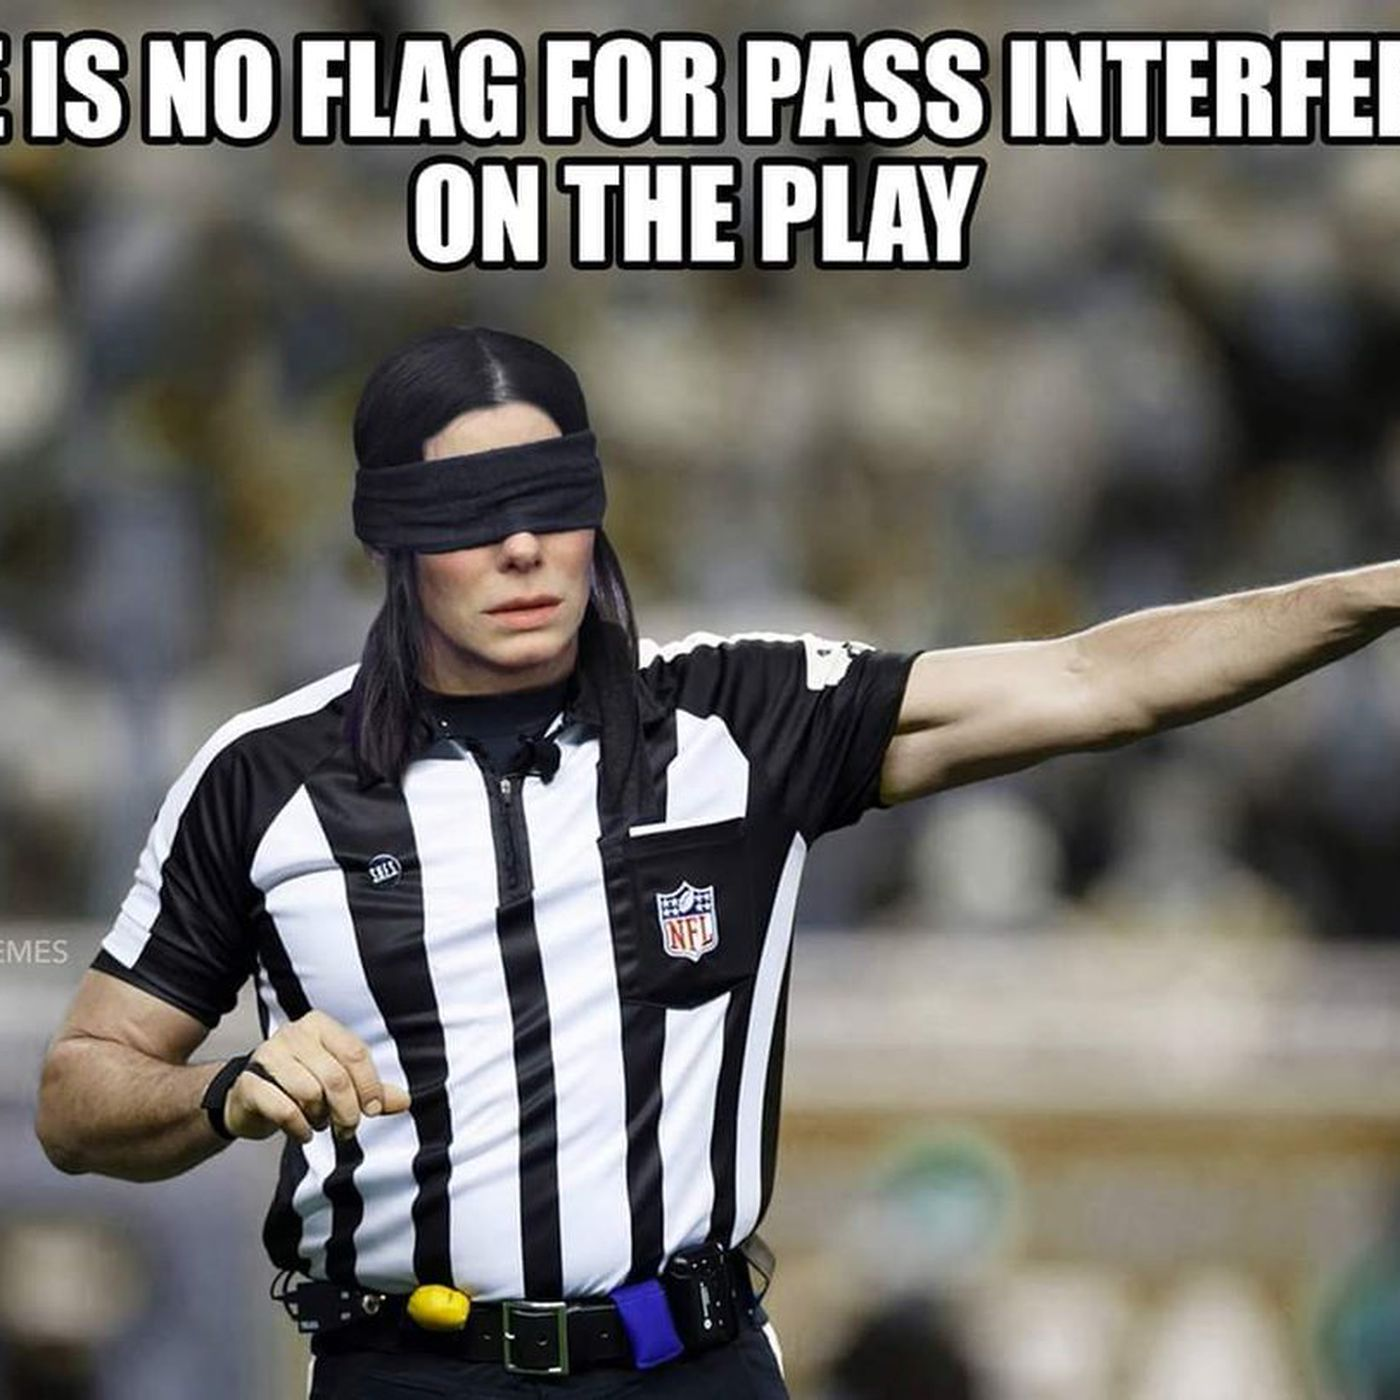 The Internets Reaction To The Saints Rams No Call For Pass